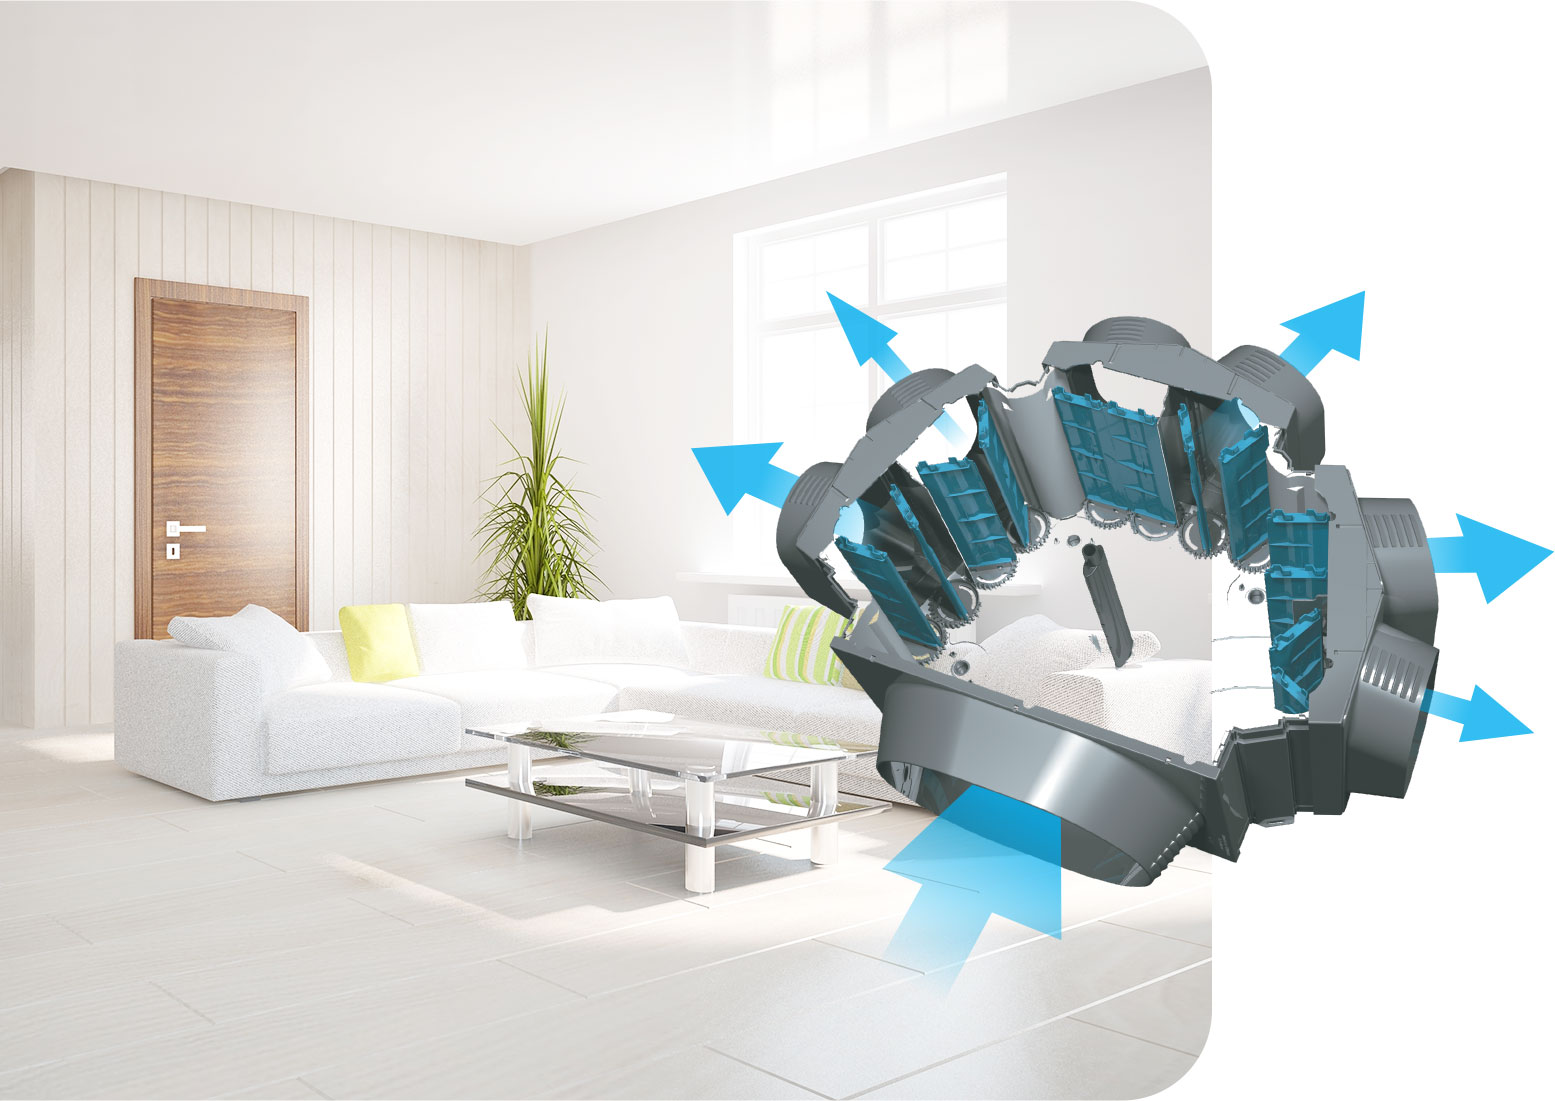 airflow system diagram to demonstrate how air travels in rooms like lounge room